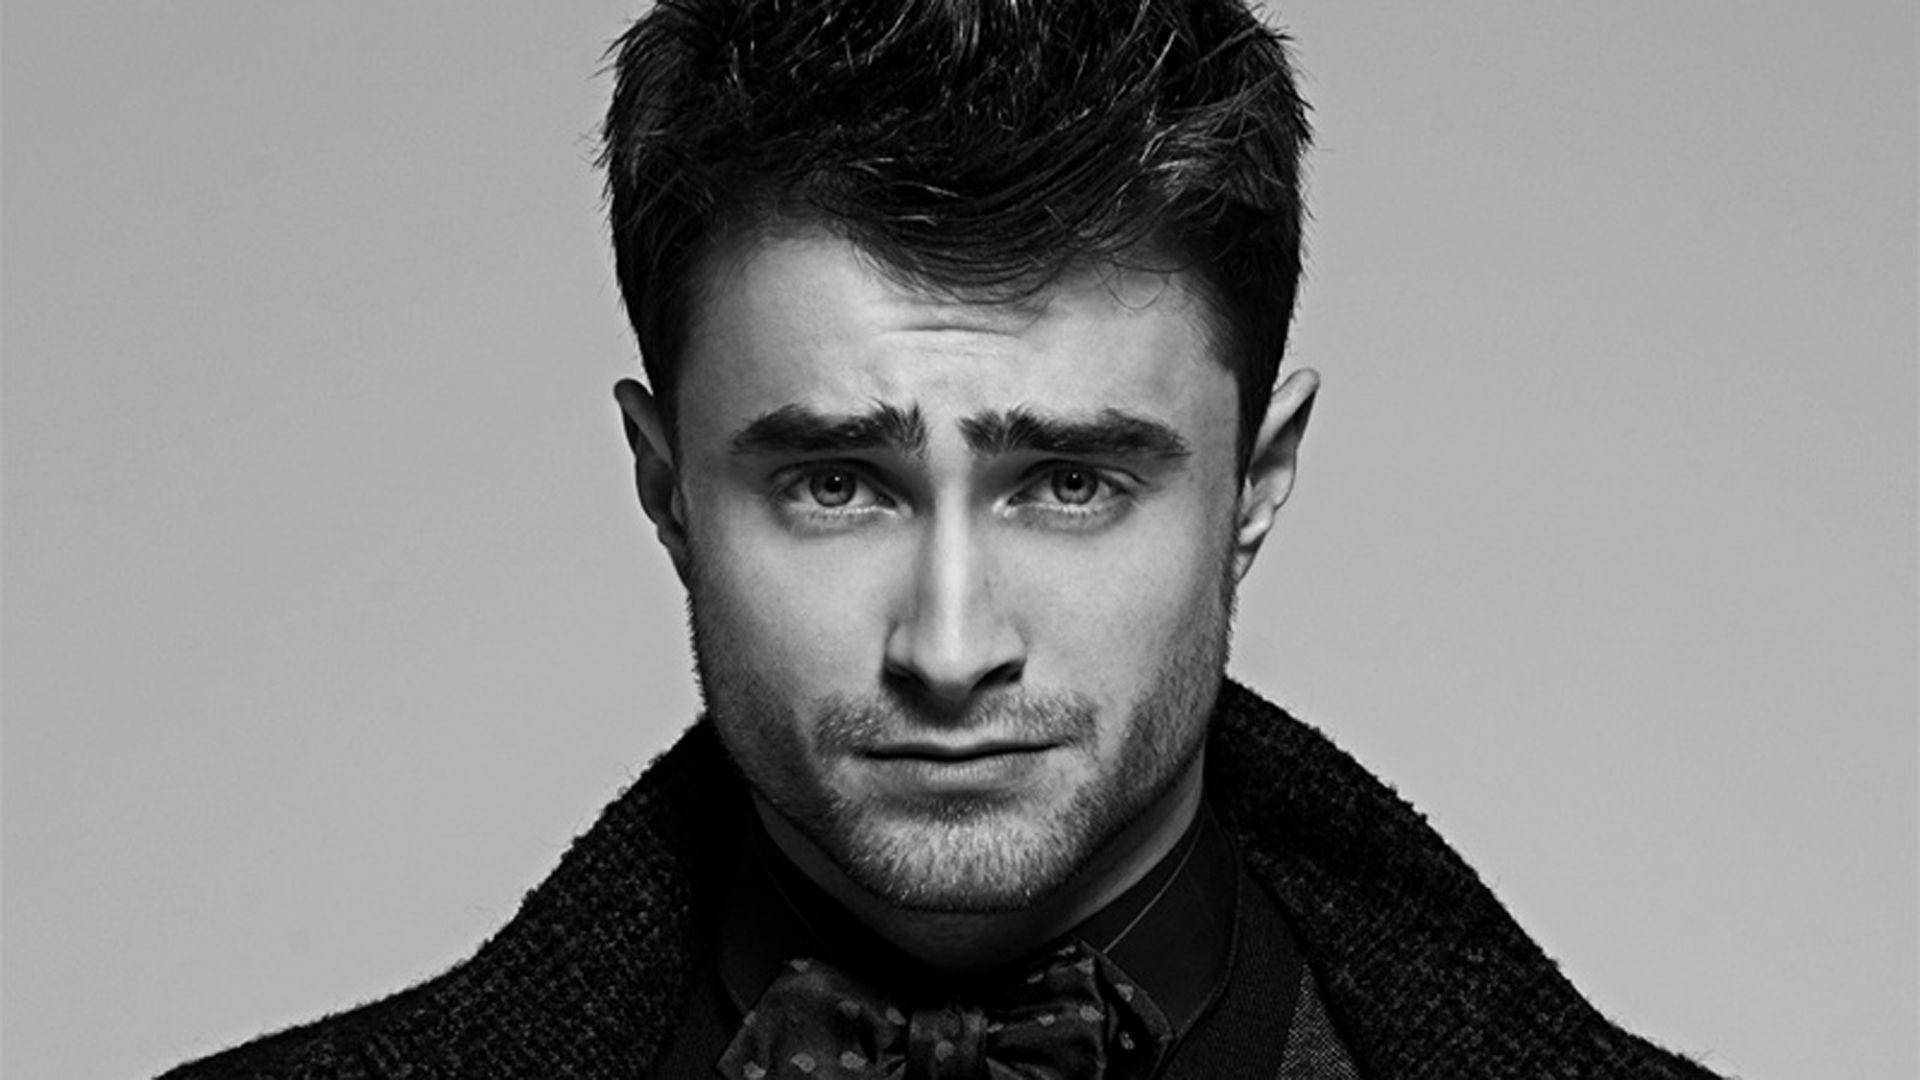 radcliffe hd wallpapers num2 - photo #4